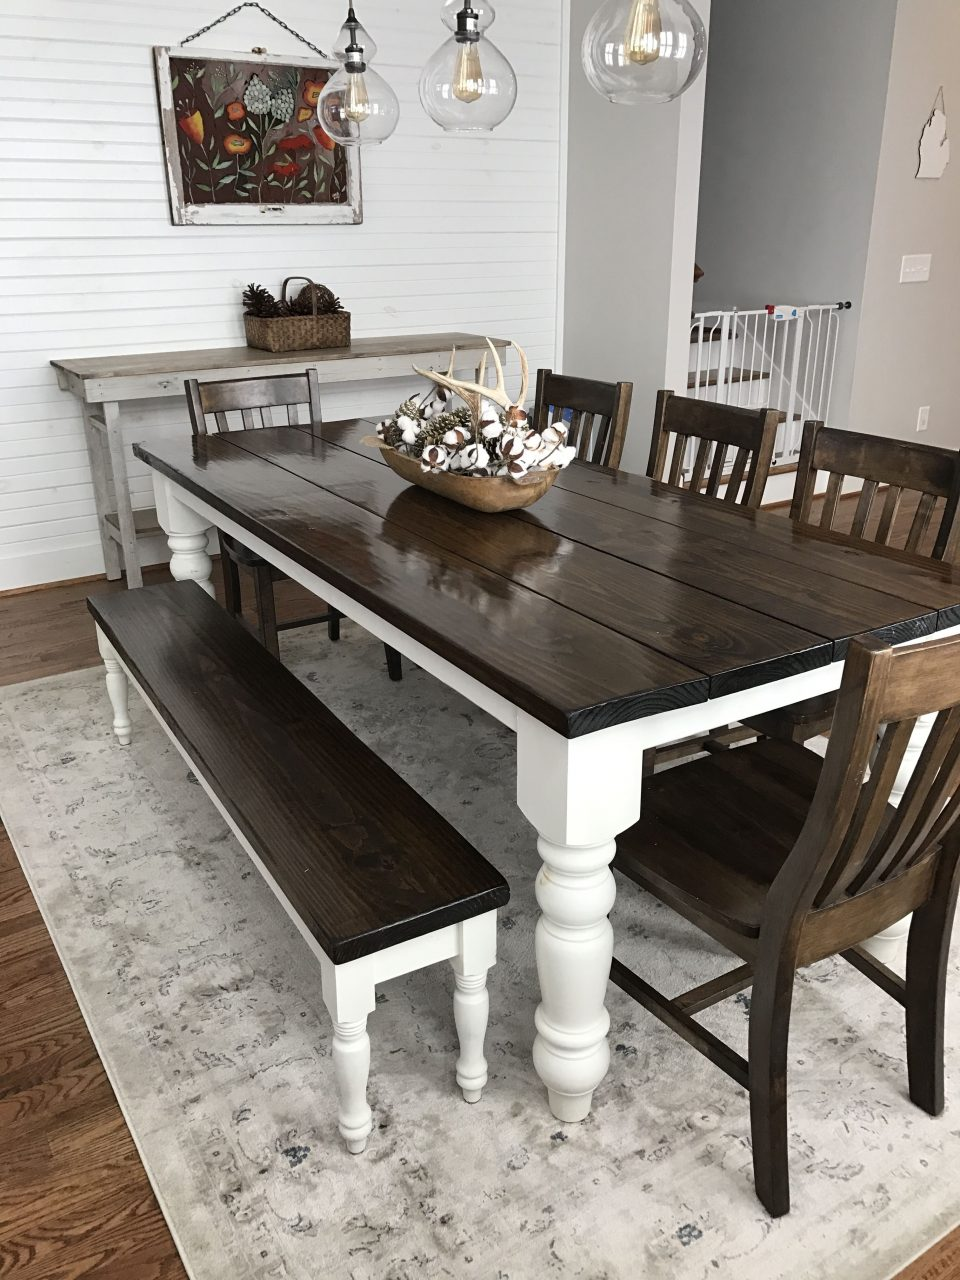 Baluster Turned Leg Table Pinterest Traditional Tabletop Dining